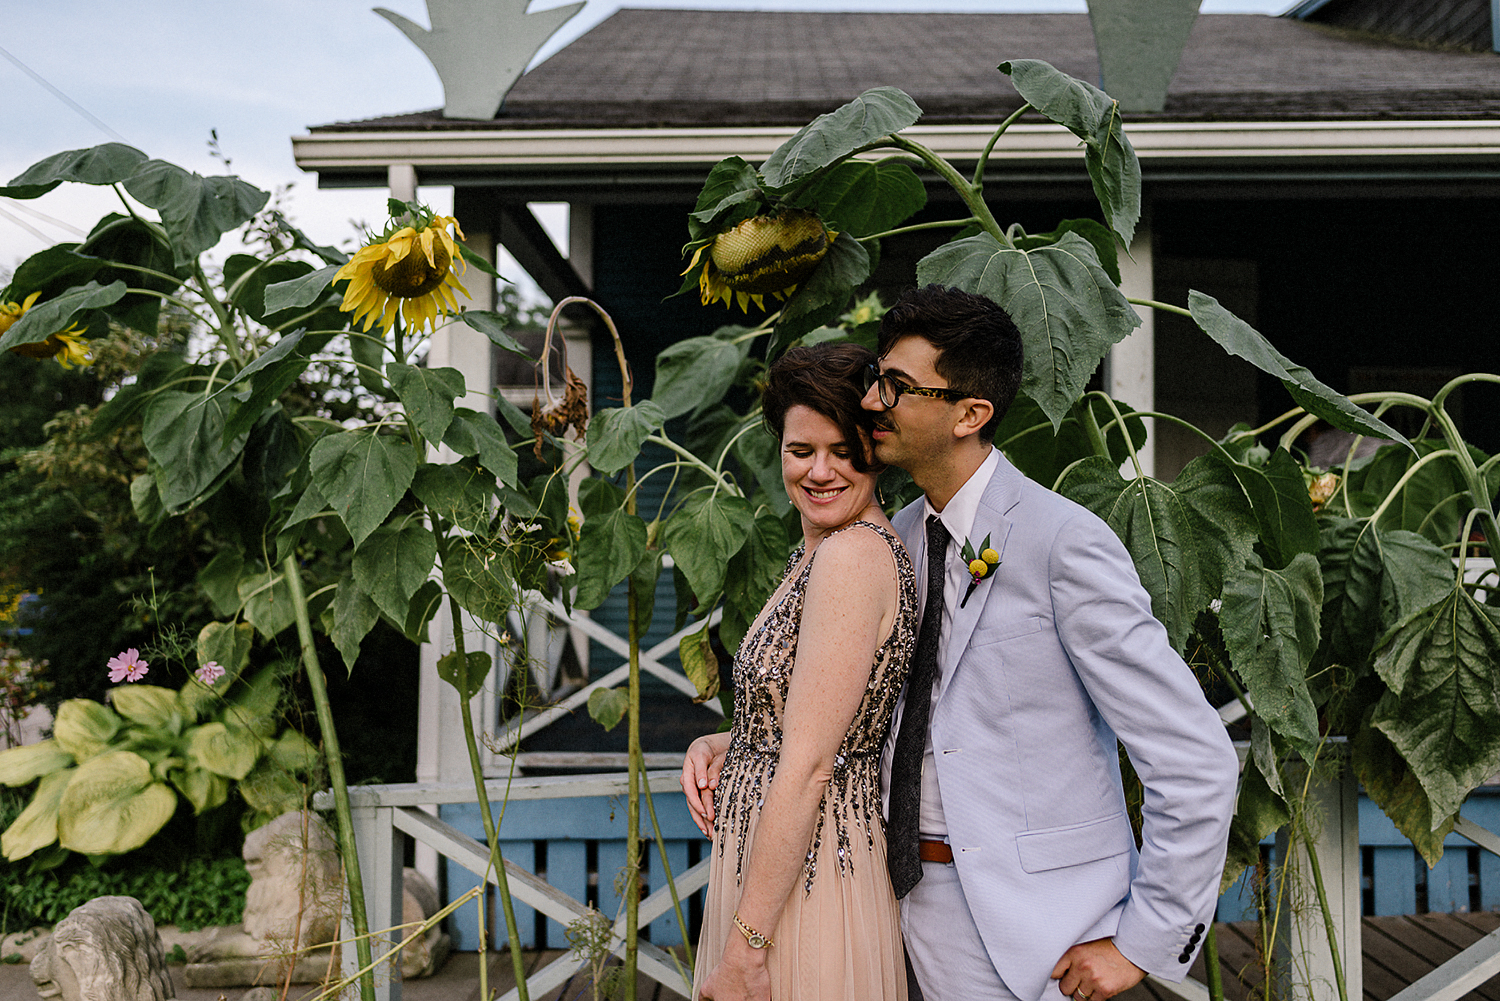 Best-Wedding-Photographers-in-Toronto-with-Photojournalistic-Documentary-Style-3B-Photography-Brian-Batista-Bettencourt-Intimate-Vintage-Wedding-at-Toronto-Island-Cafe-Clubhouse-Sunset-Unposed-Natural-Portraits.jpg